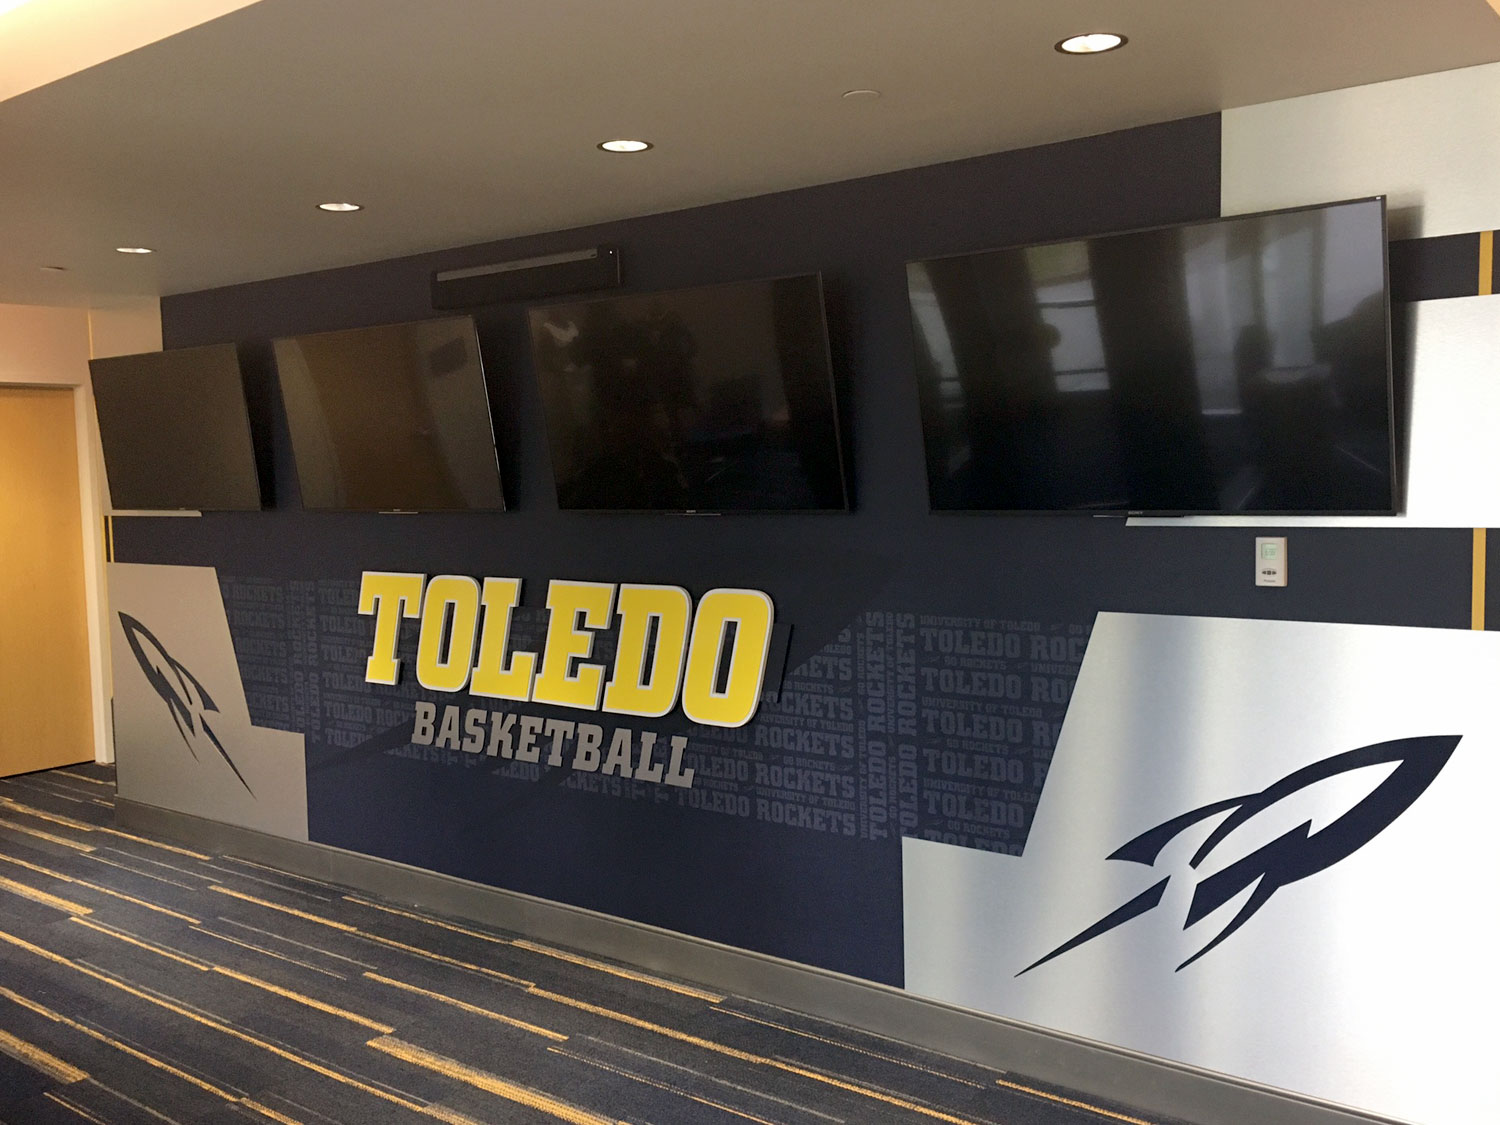 University of Toledo Basketball Wall Graphics Display